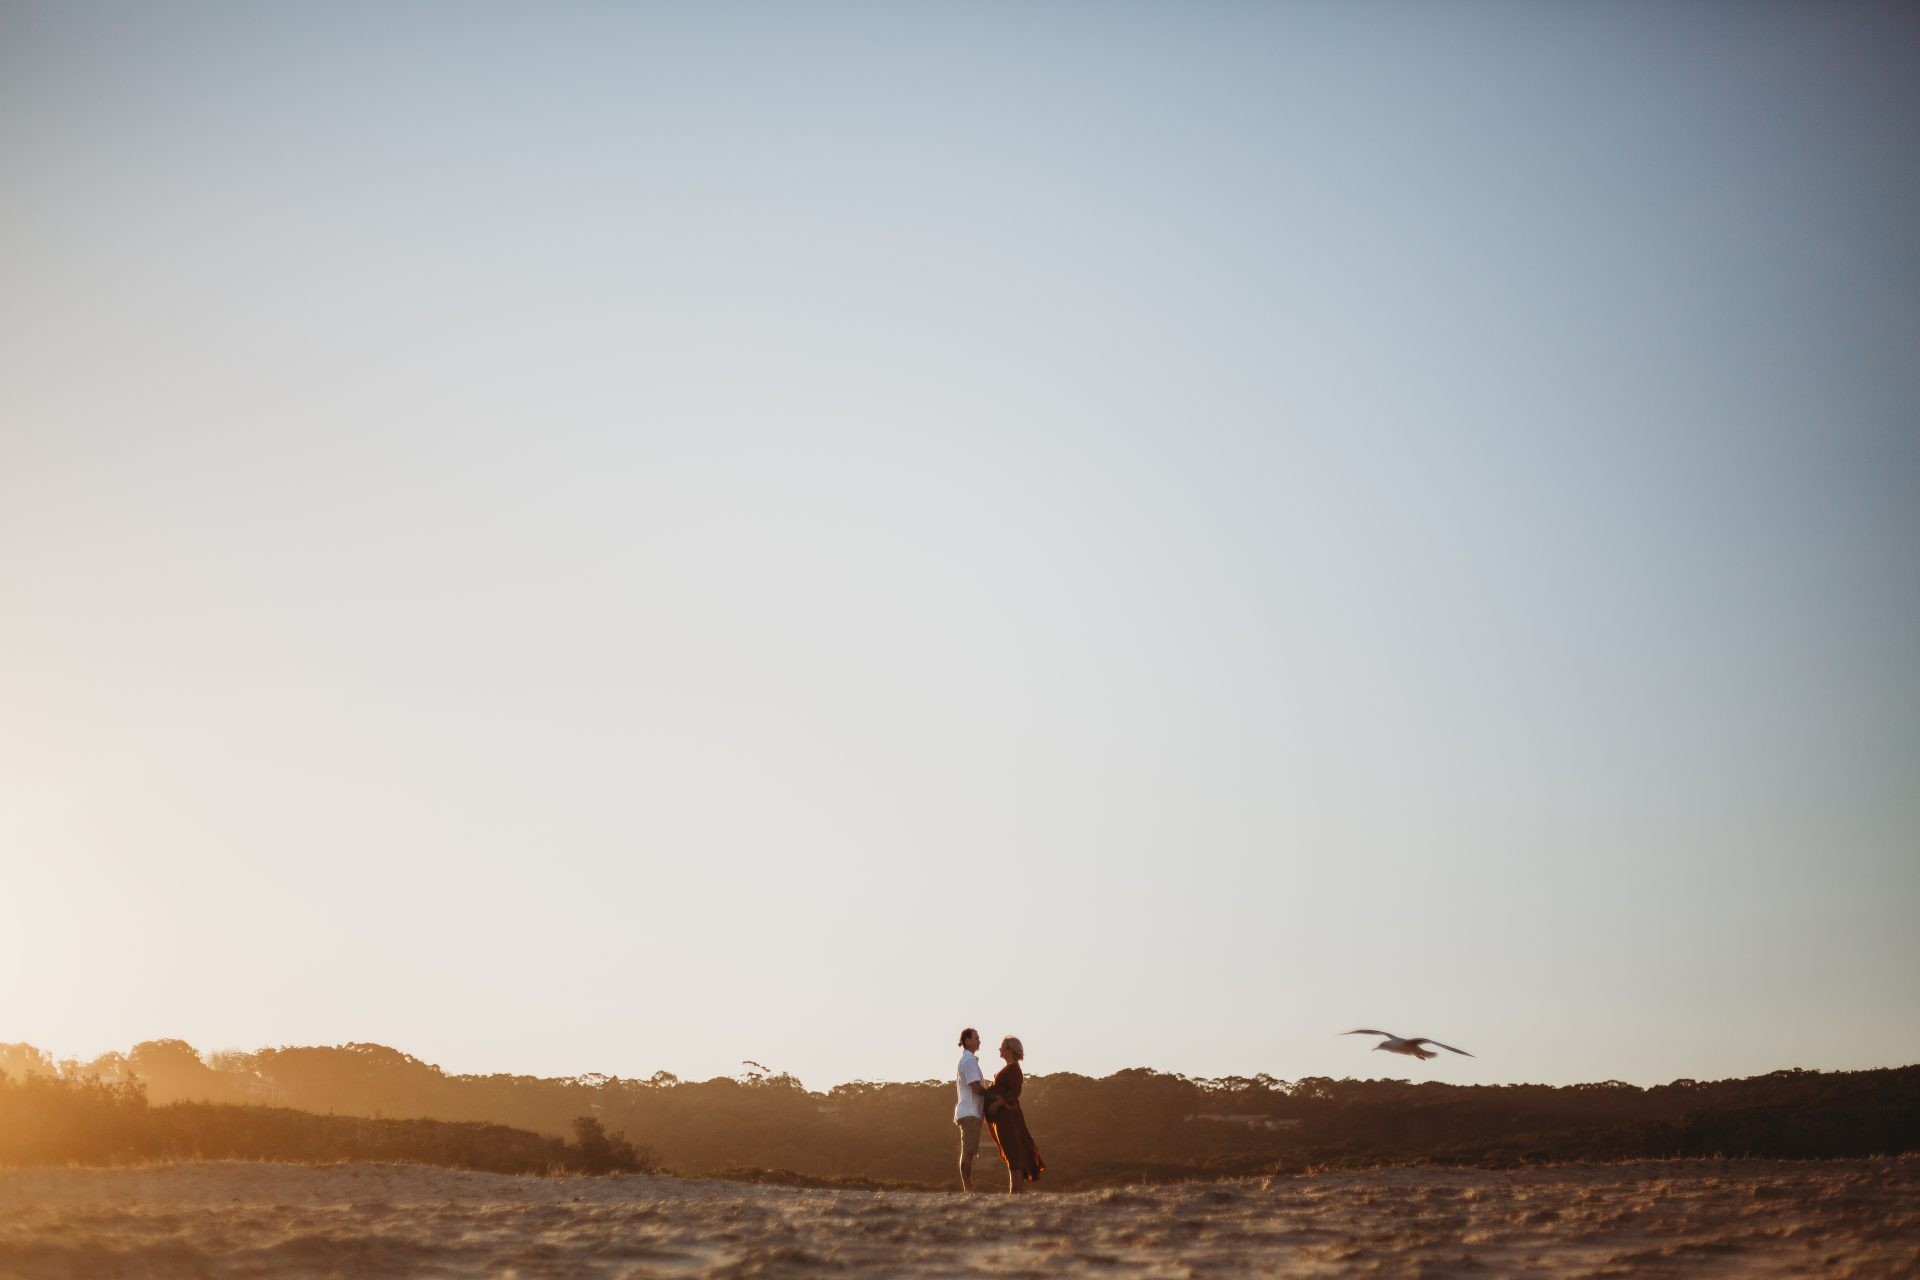 Far away shot of young couple standing facing each other on the beach, as a seagull flies nearby